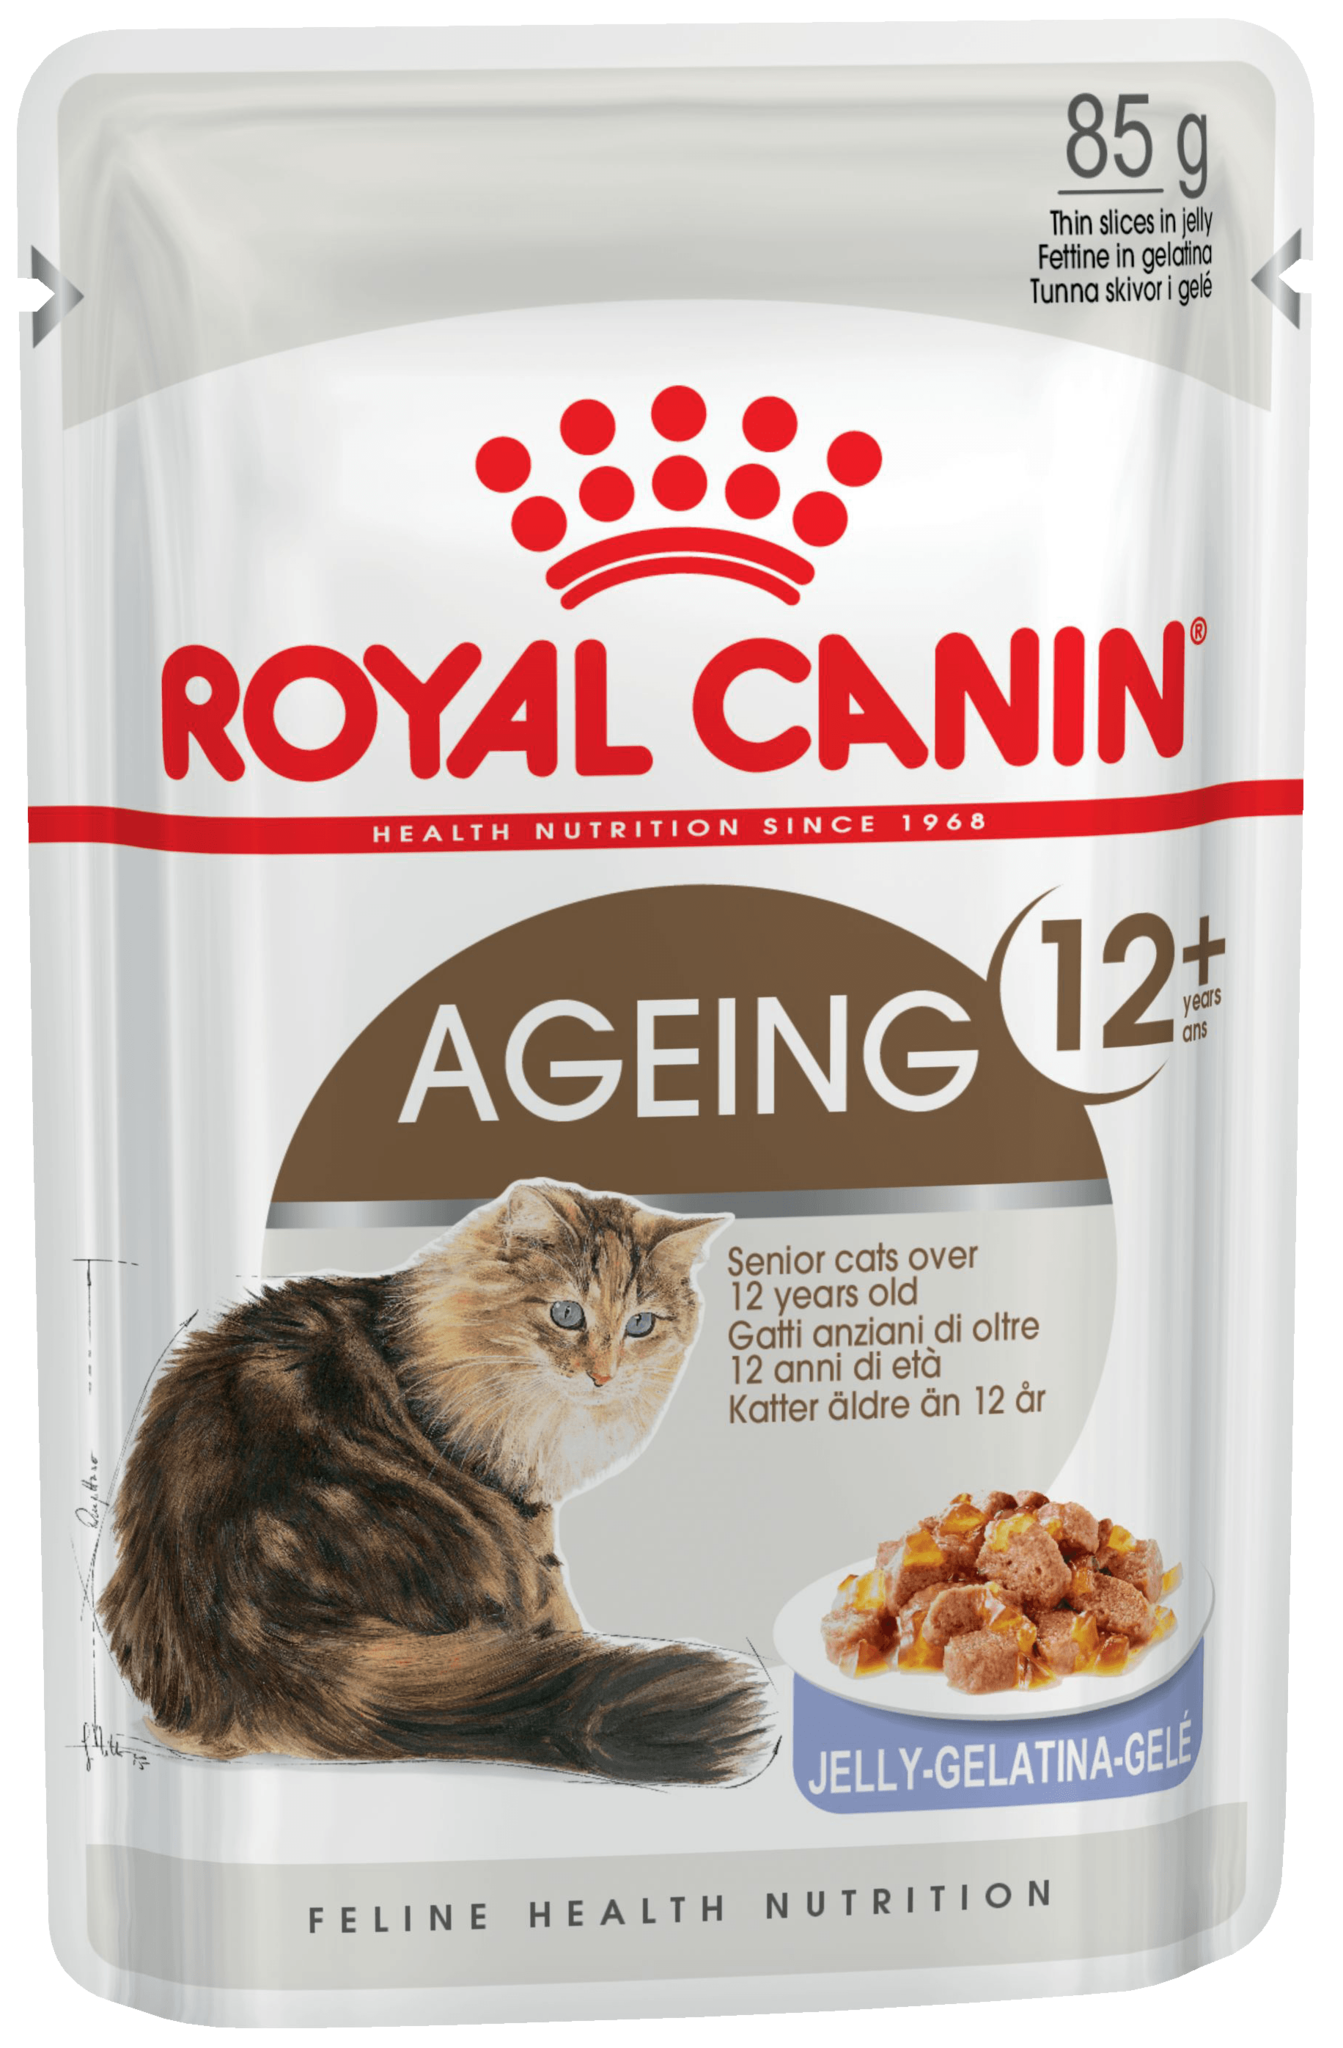 Royal Canin Пауч для взрослых кошек старше 12 лет, Royal Canin Ageing +12 (в желе) d_ageing-in-jelly.png